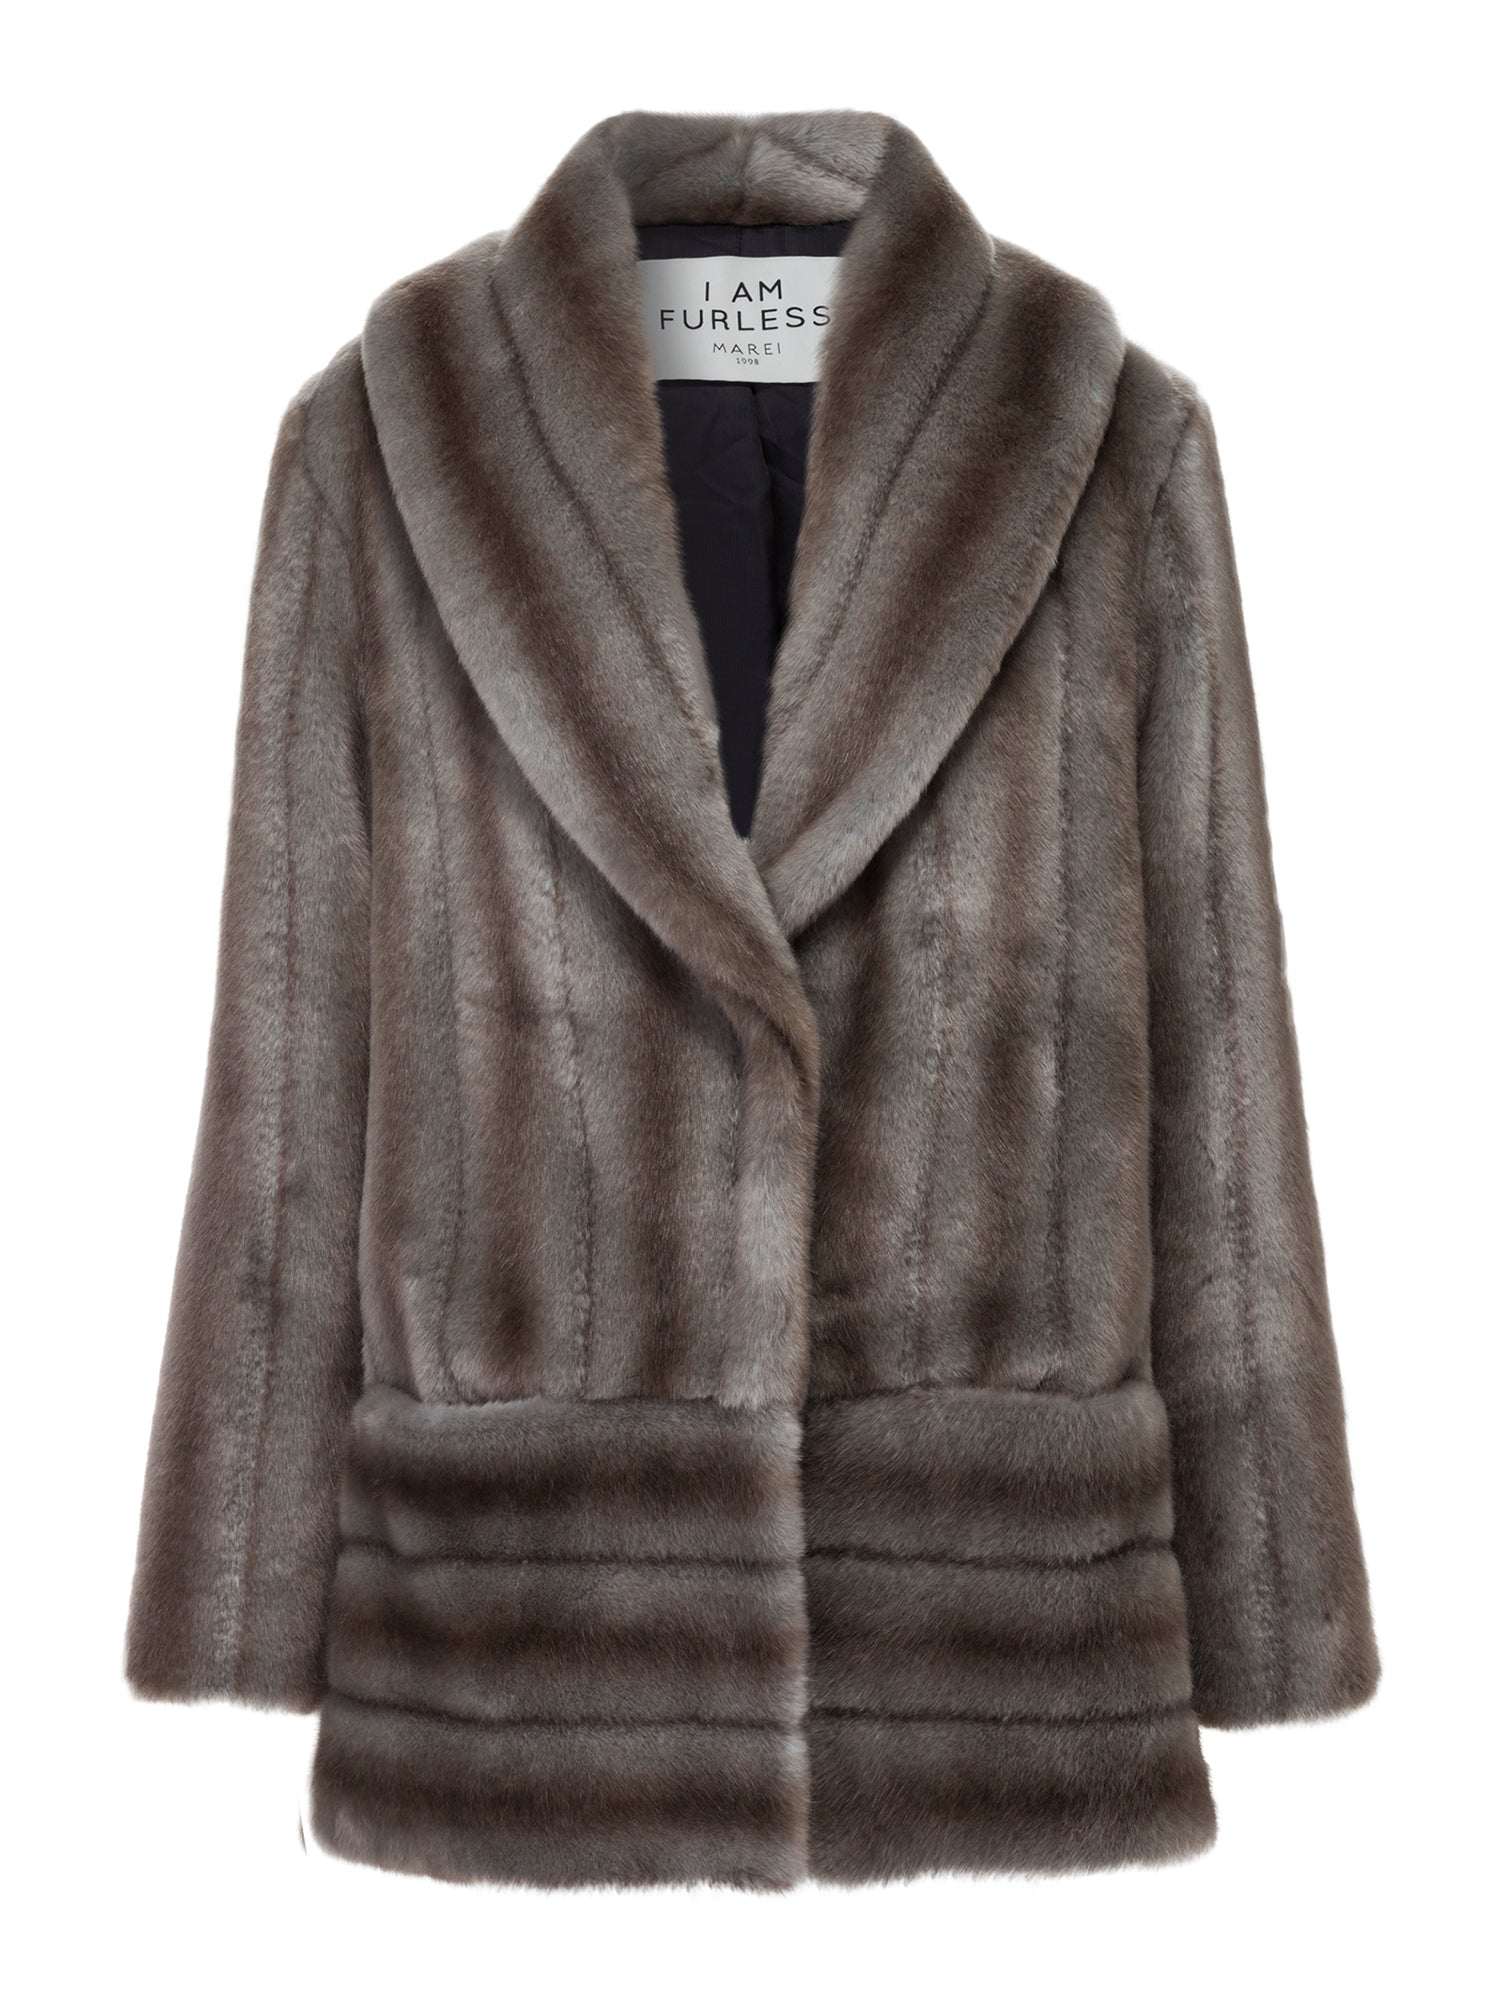 A Packshot Of Marei1998's Labiatae Faux Fur Coat In Classic Grey Color. Made From Plush Faux Fur, Which Feels So Warm And Comfortable. Cut In A Slight A-Line Shape And Fully Lined, It Is Ideal For Smooth Layering. Timeless Winter Investment. Front View.